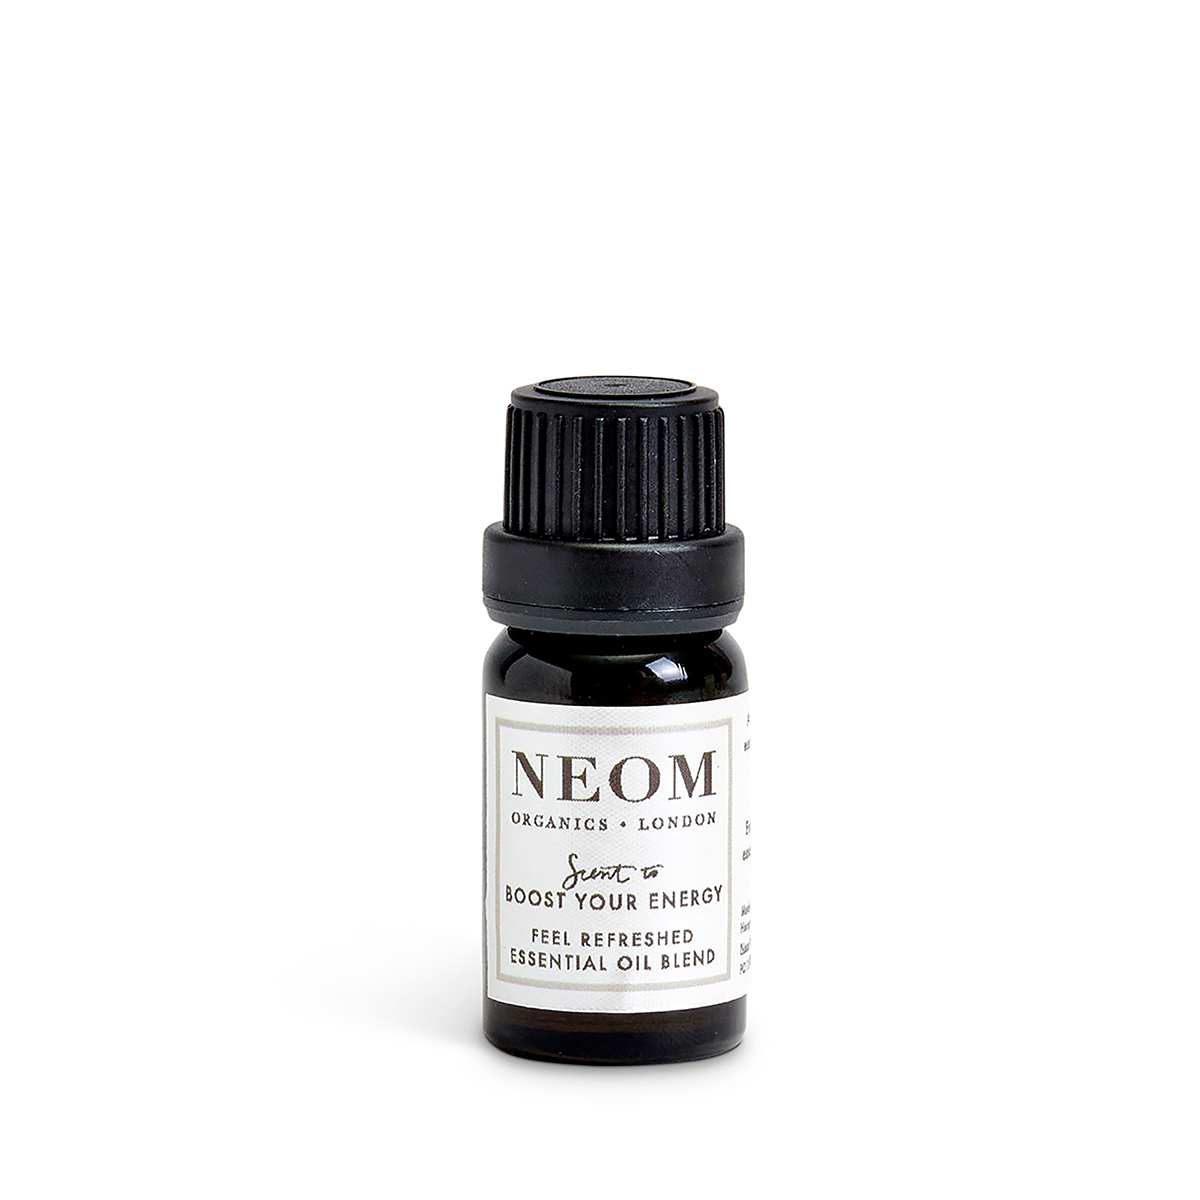 Feel Refreshed Essential Oil Blend